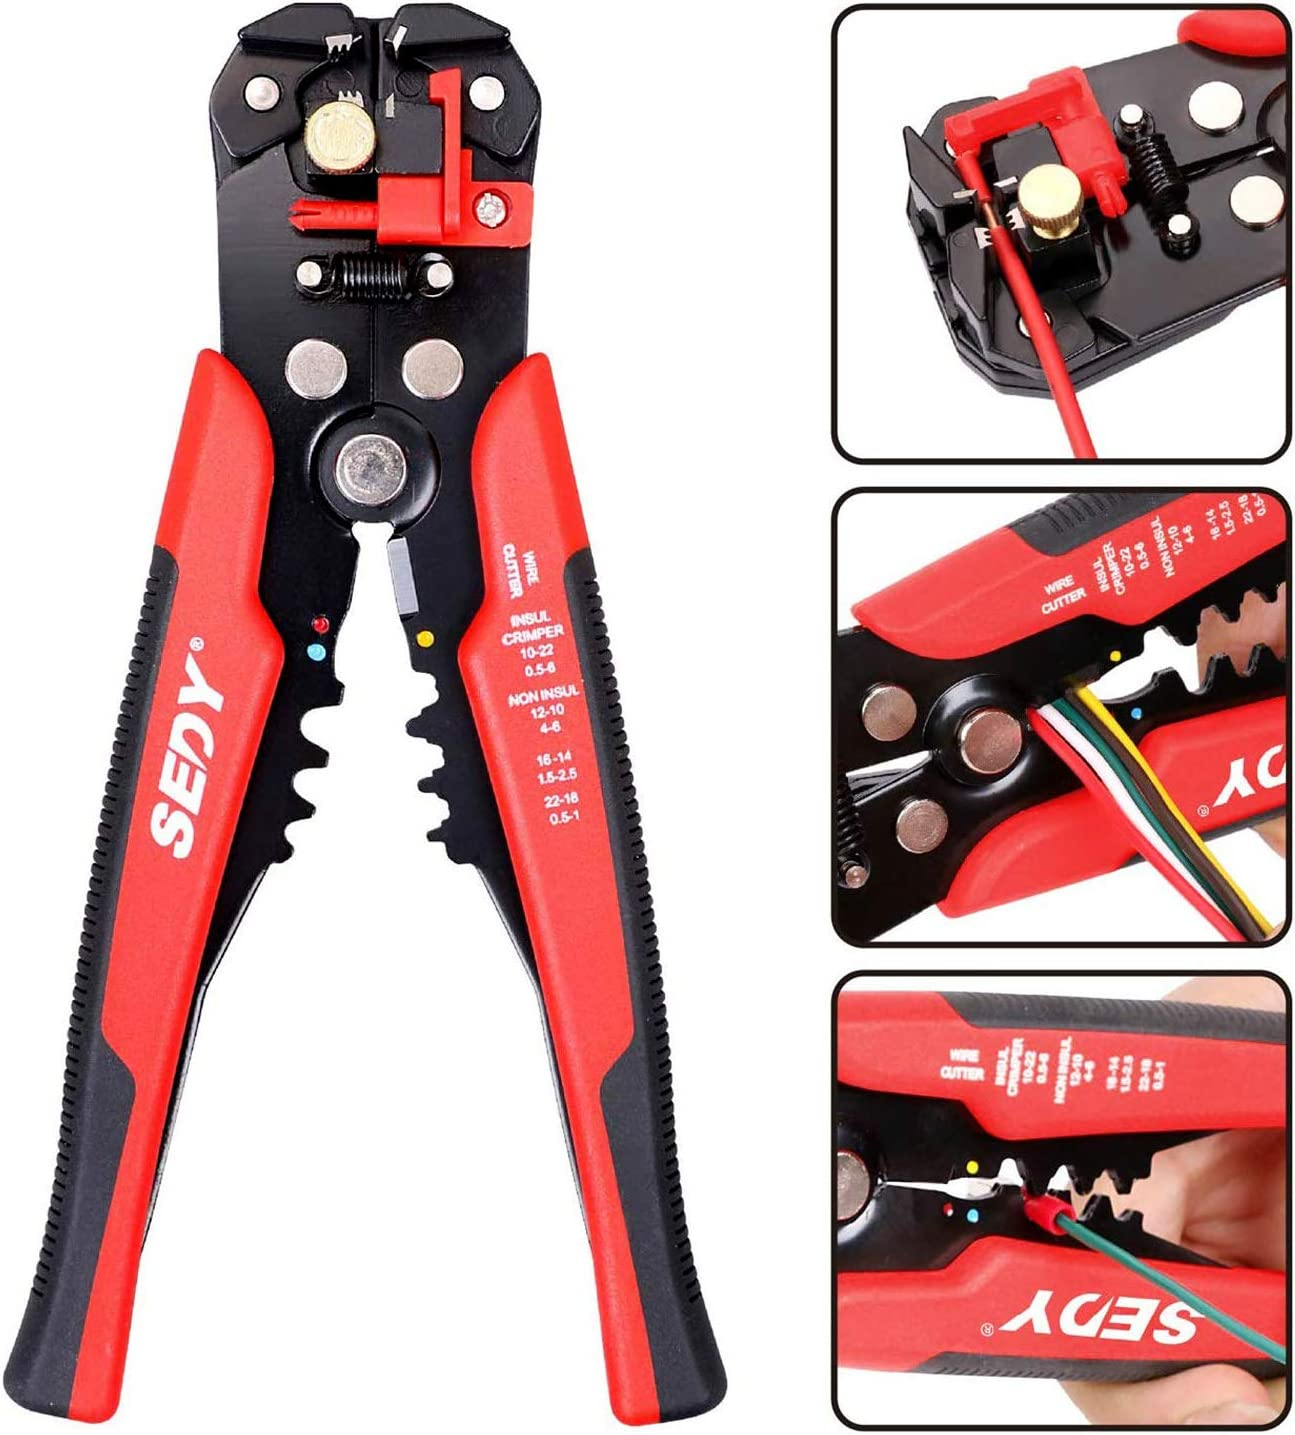 Self Adjusting Wire Cable Stripper Multi-functional Wire Stripper Cutting Tool